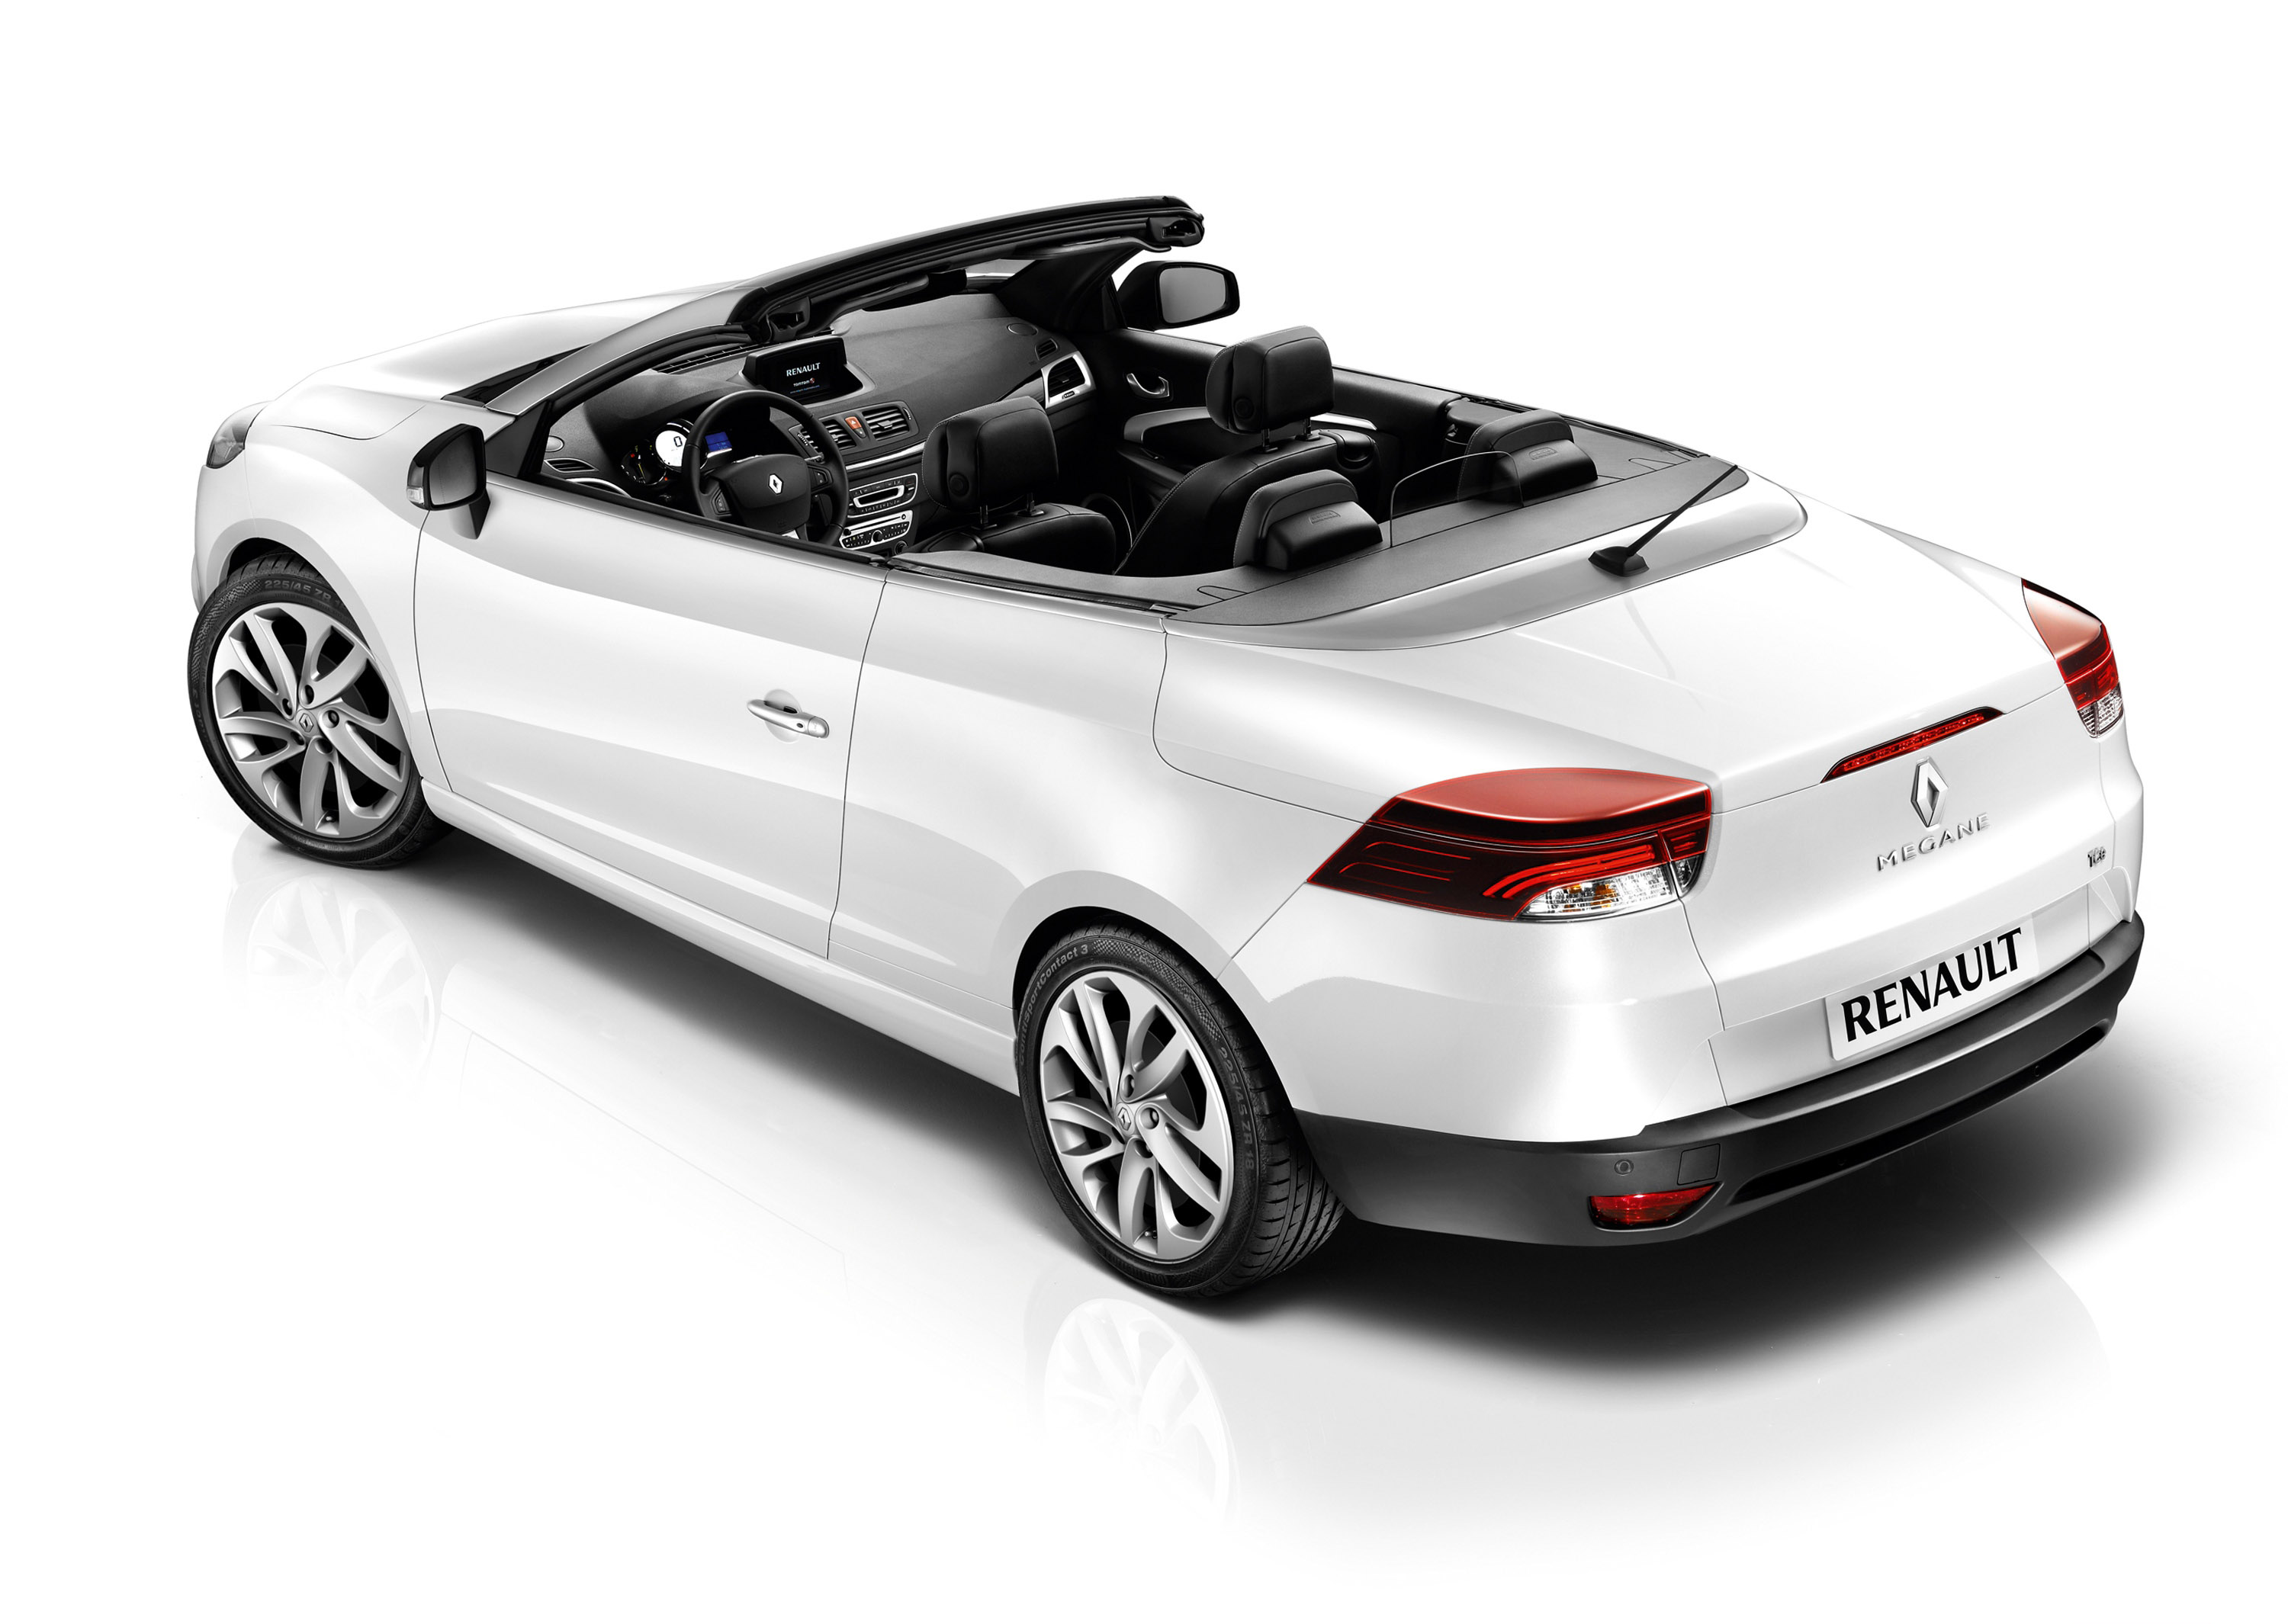 2011 renault megane coupe cabriolet full details. Black Bedroom Furniture Sets. Home Design Ideas